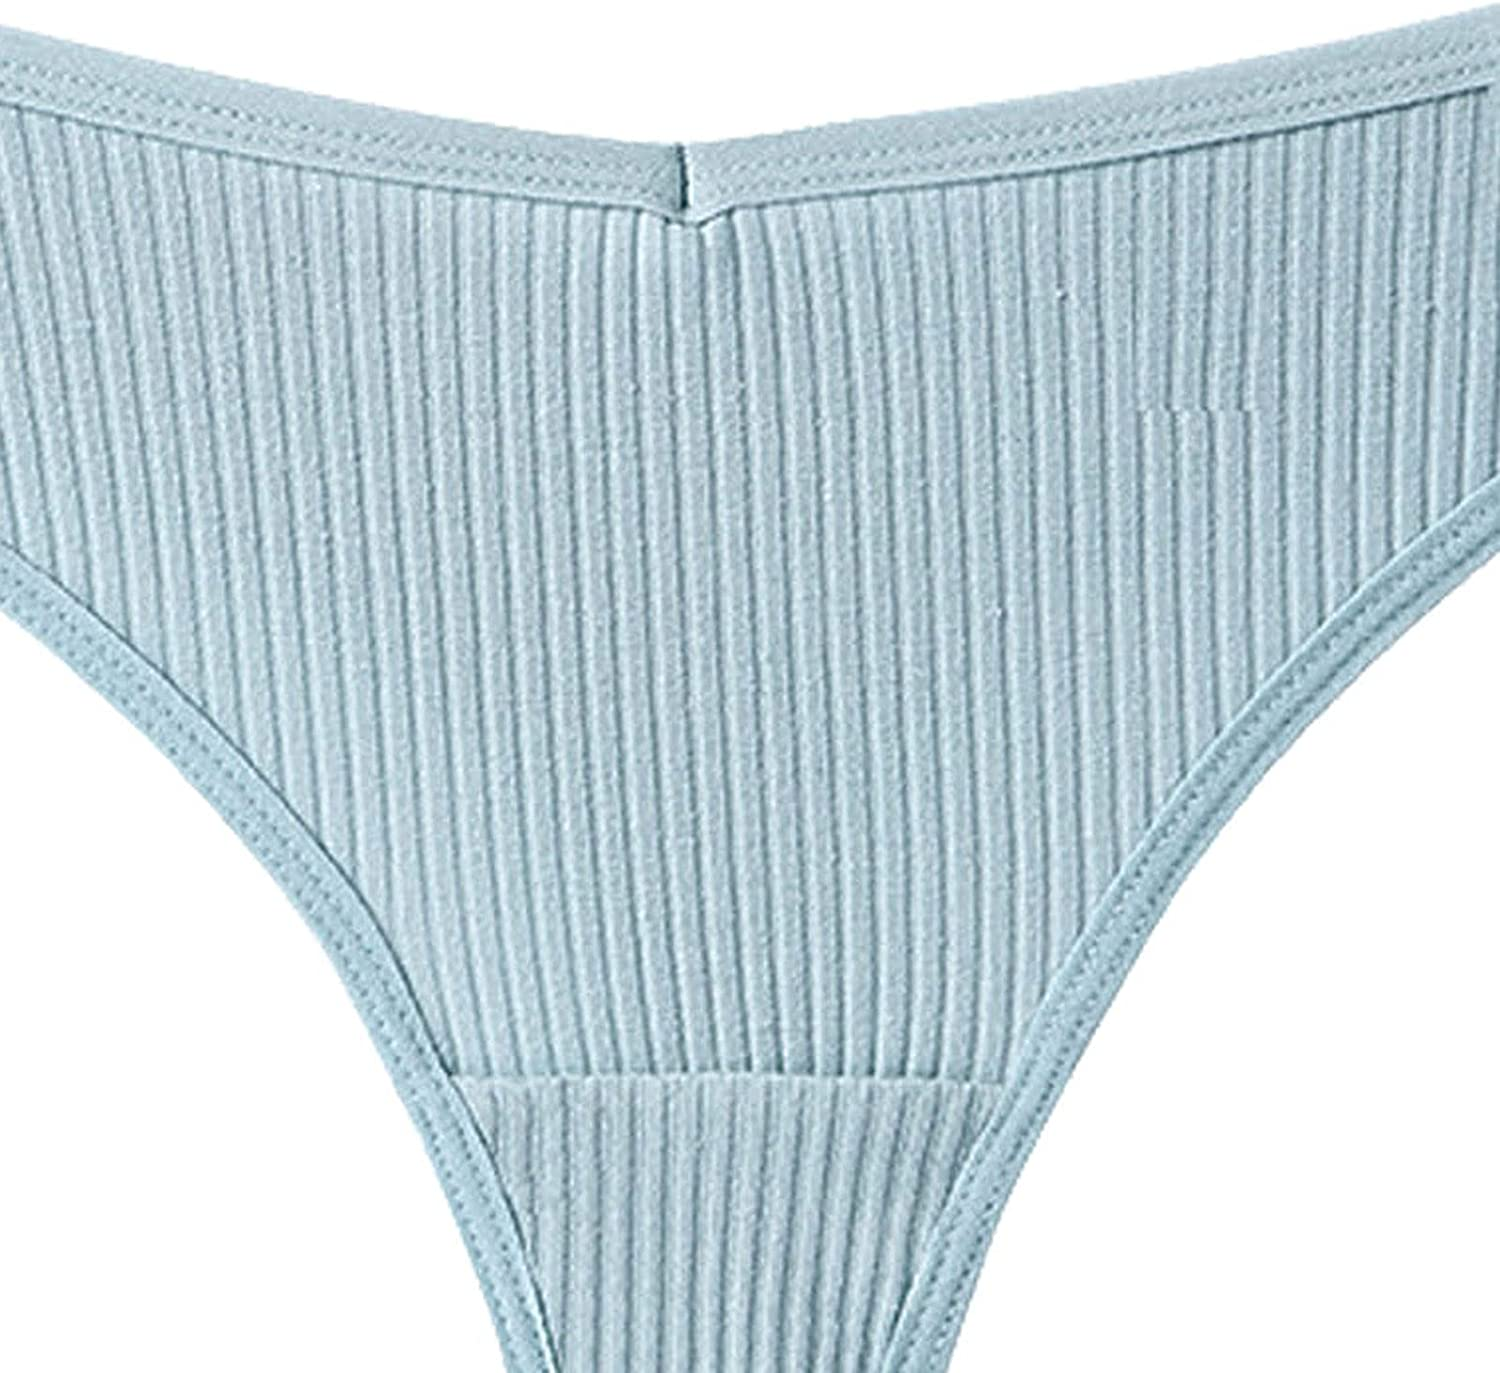 wodceeke Cotton Thongs for Women Pack, Women's Sexy V Waist Seamless Comfy Solid G-String Thong Underpants Panties Lingerie